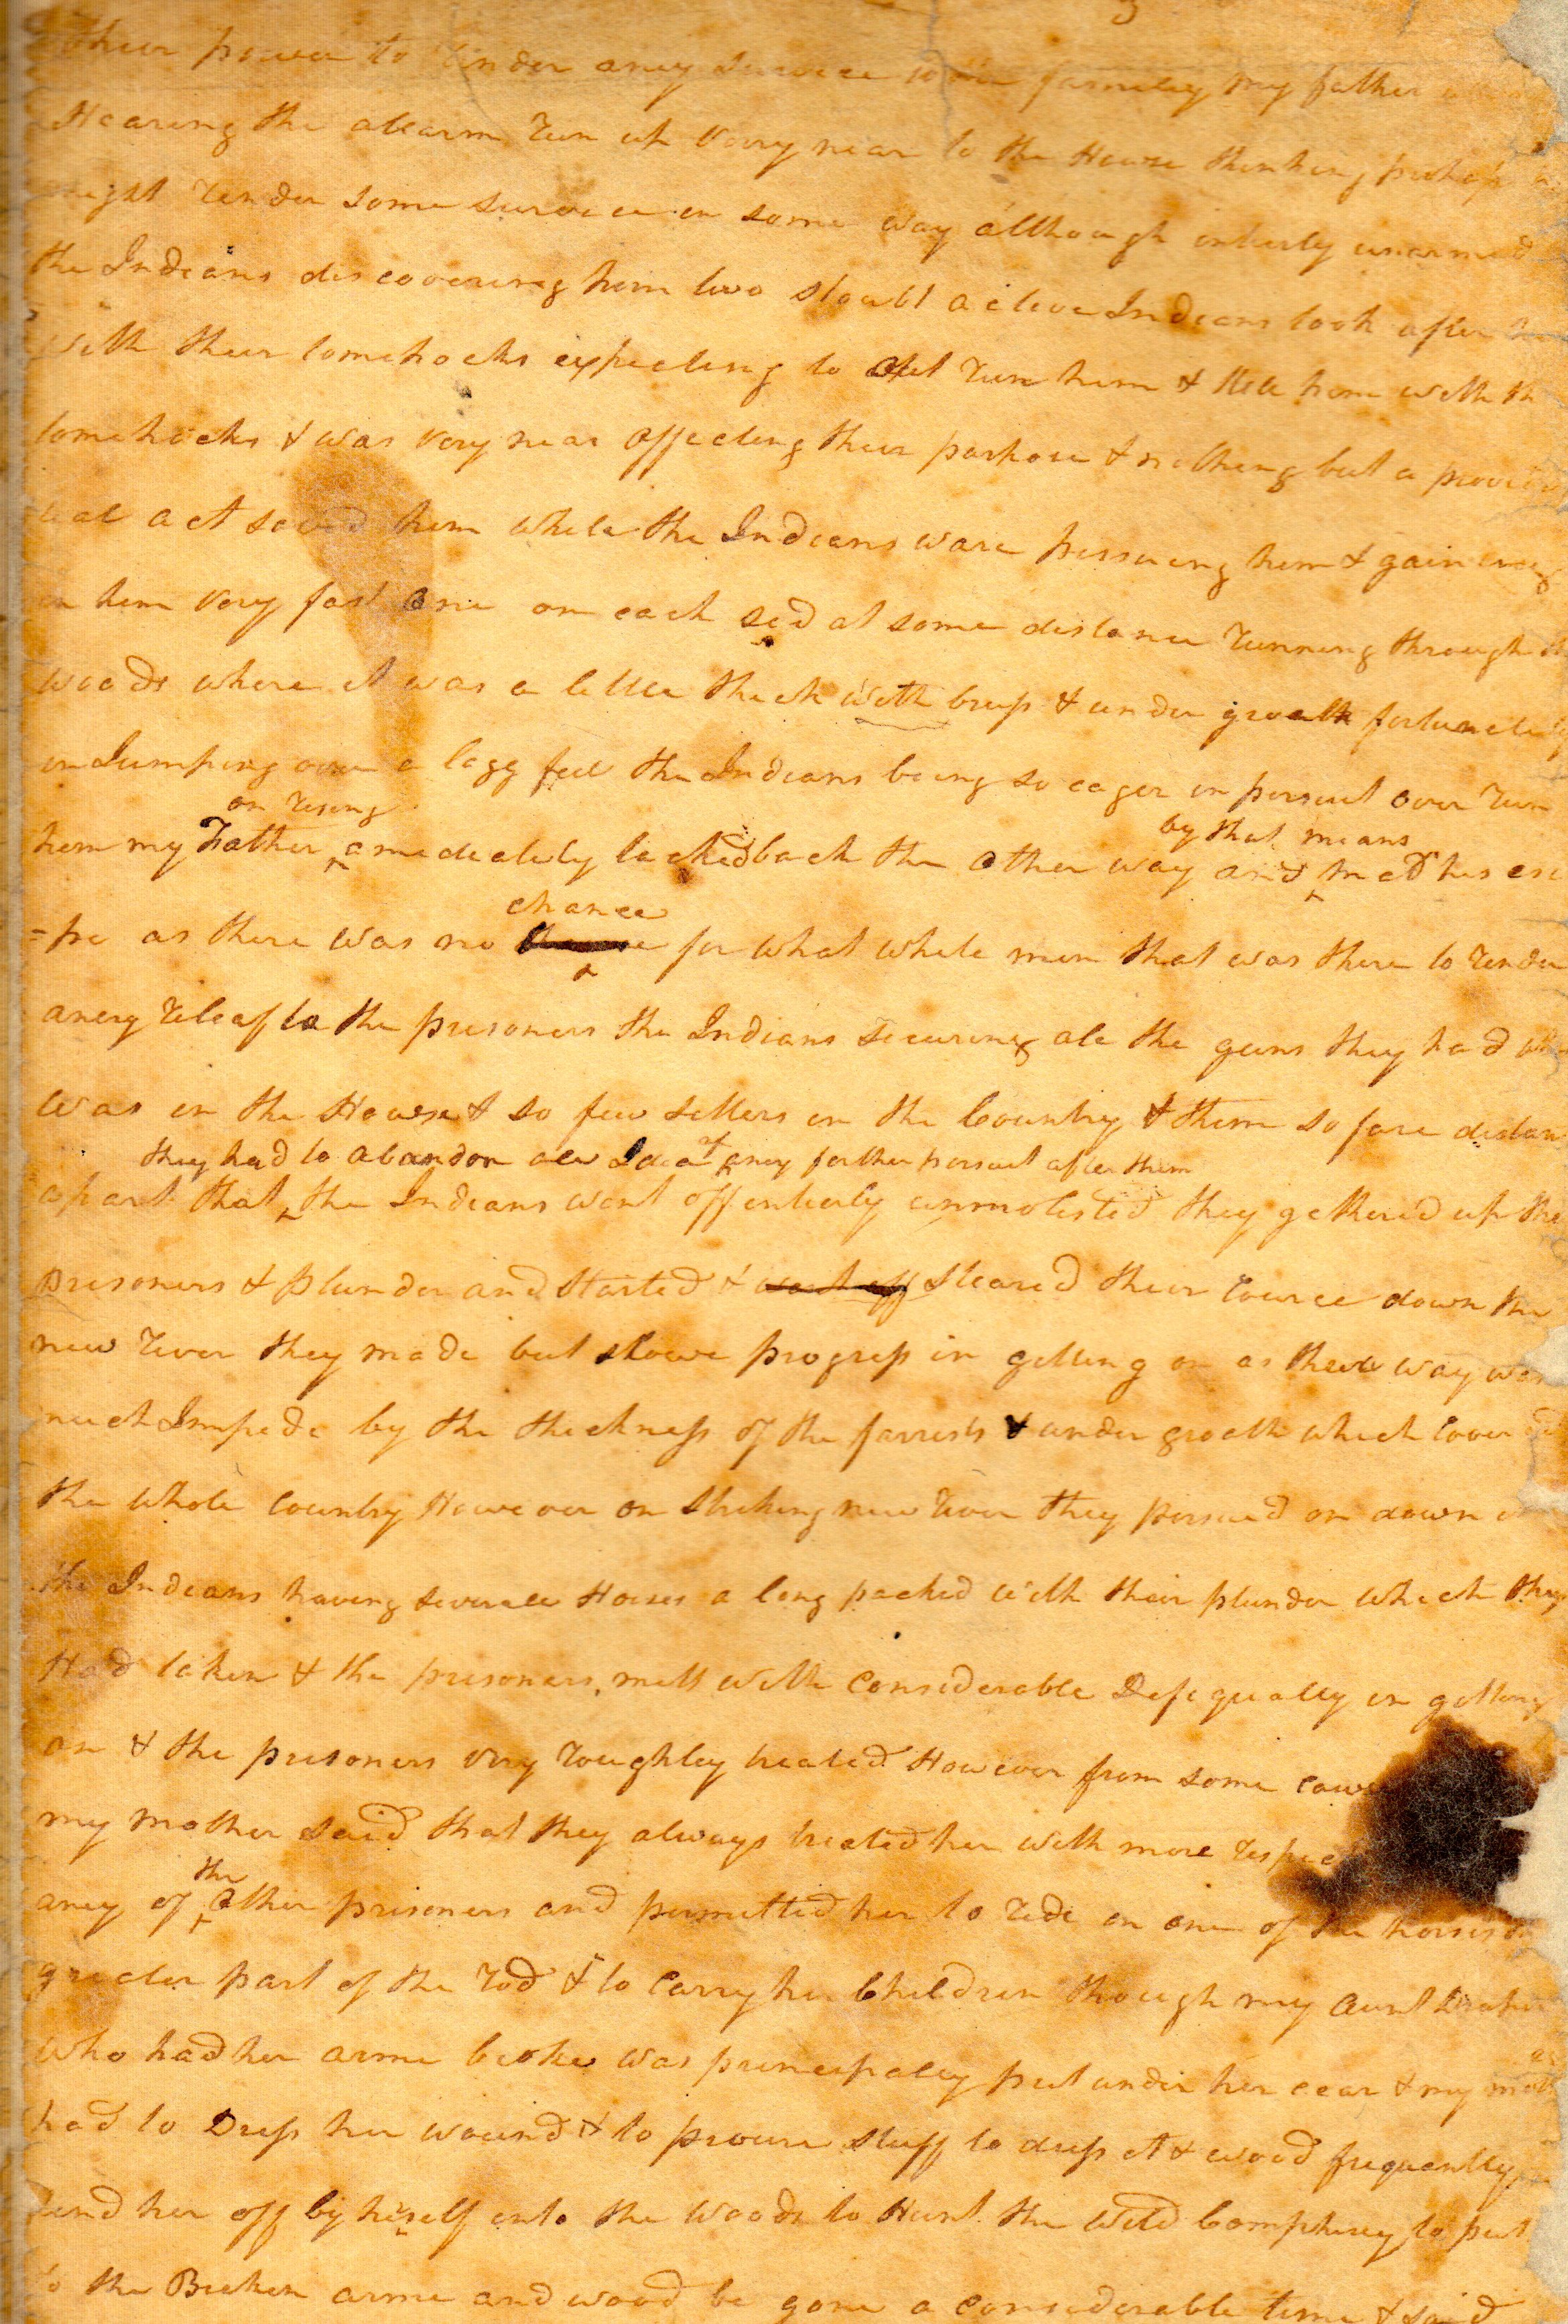 Page 3 of John Ingles' handwritten manuscript, which was later published as a Escape From Indian Captivity: The Story of Mary Draper Ingles and son Thomas Ingles, ca. 1825. (MSS 38-246. Image by Petrina Jackson)